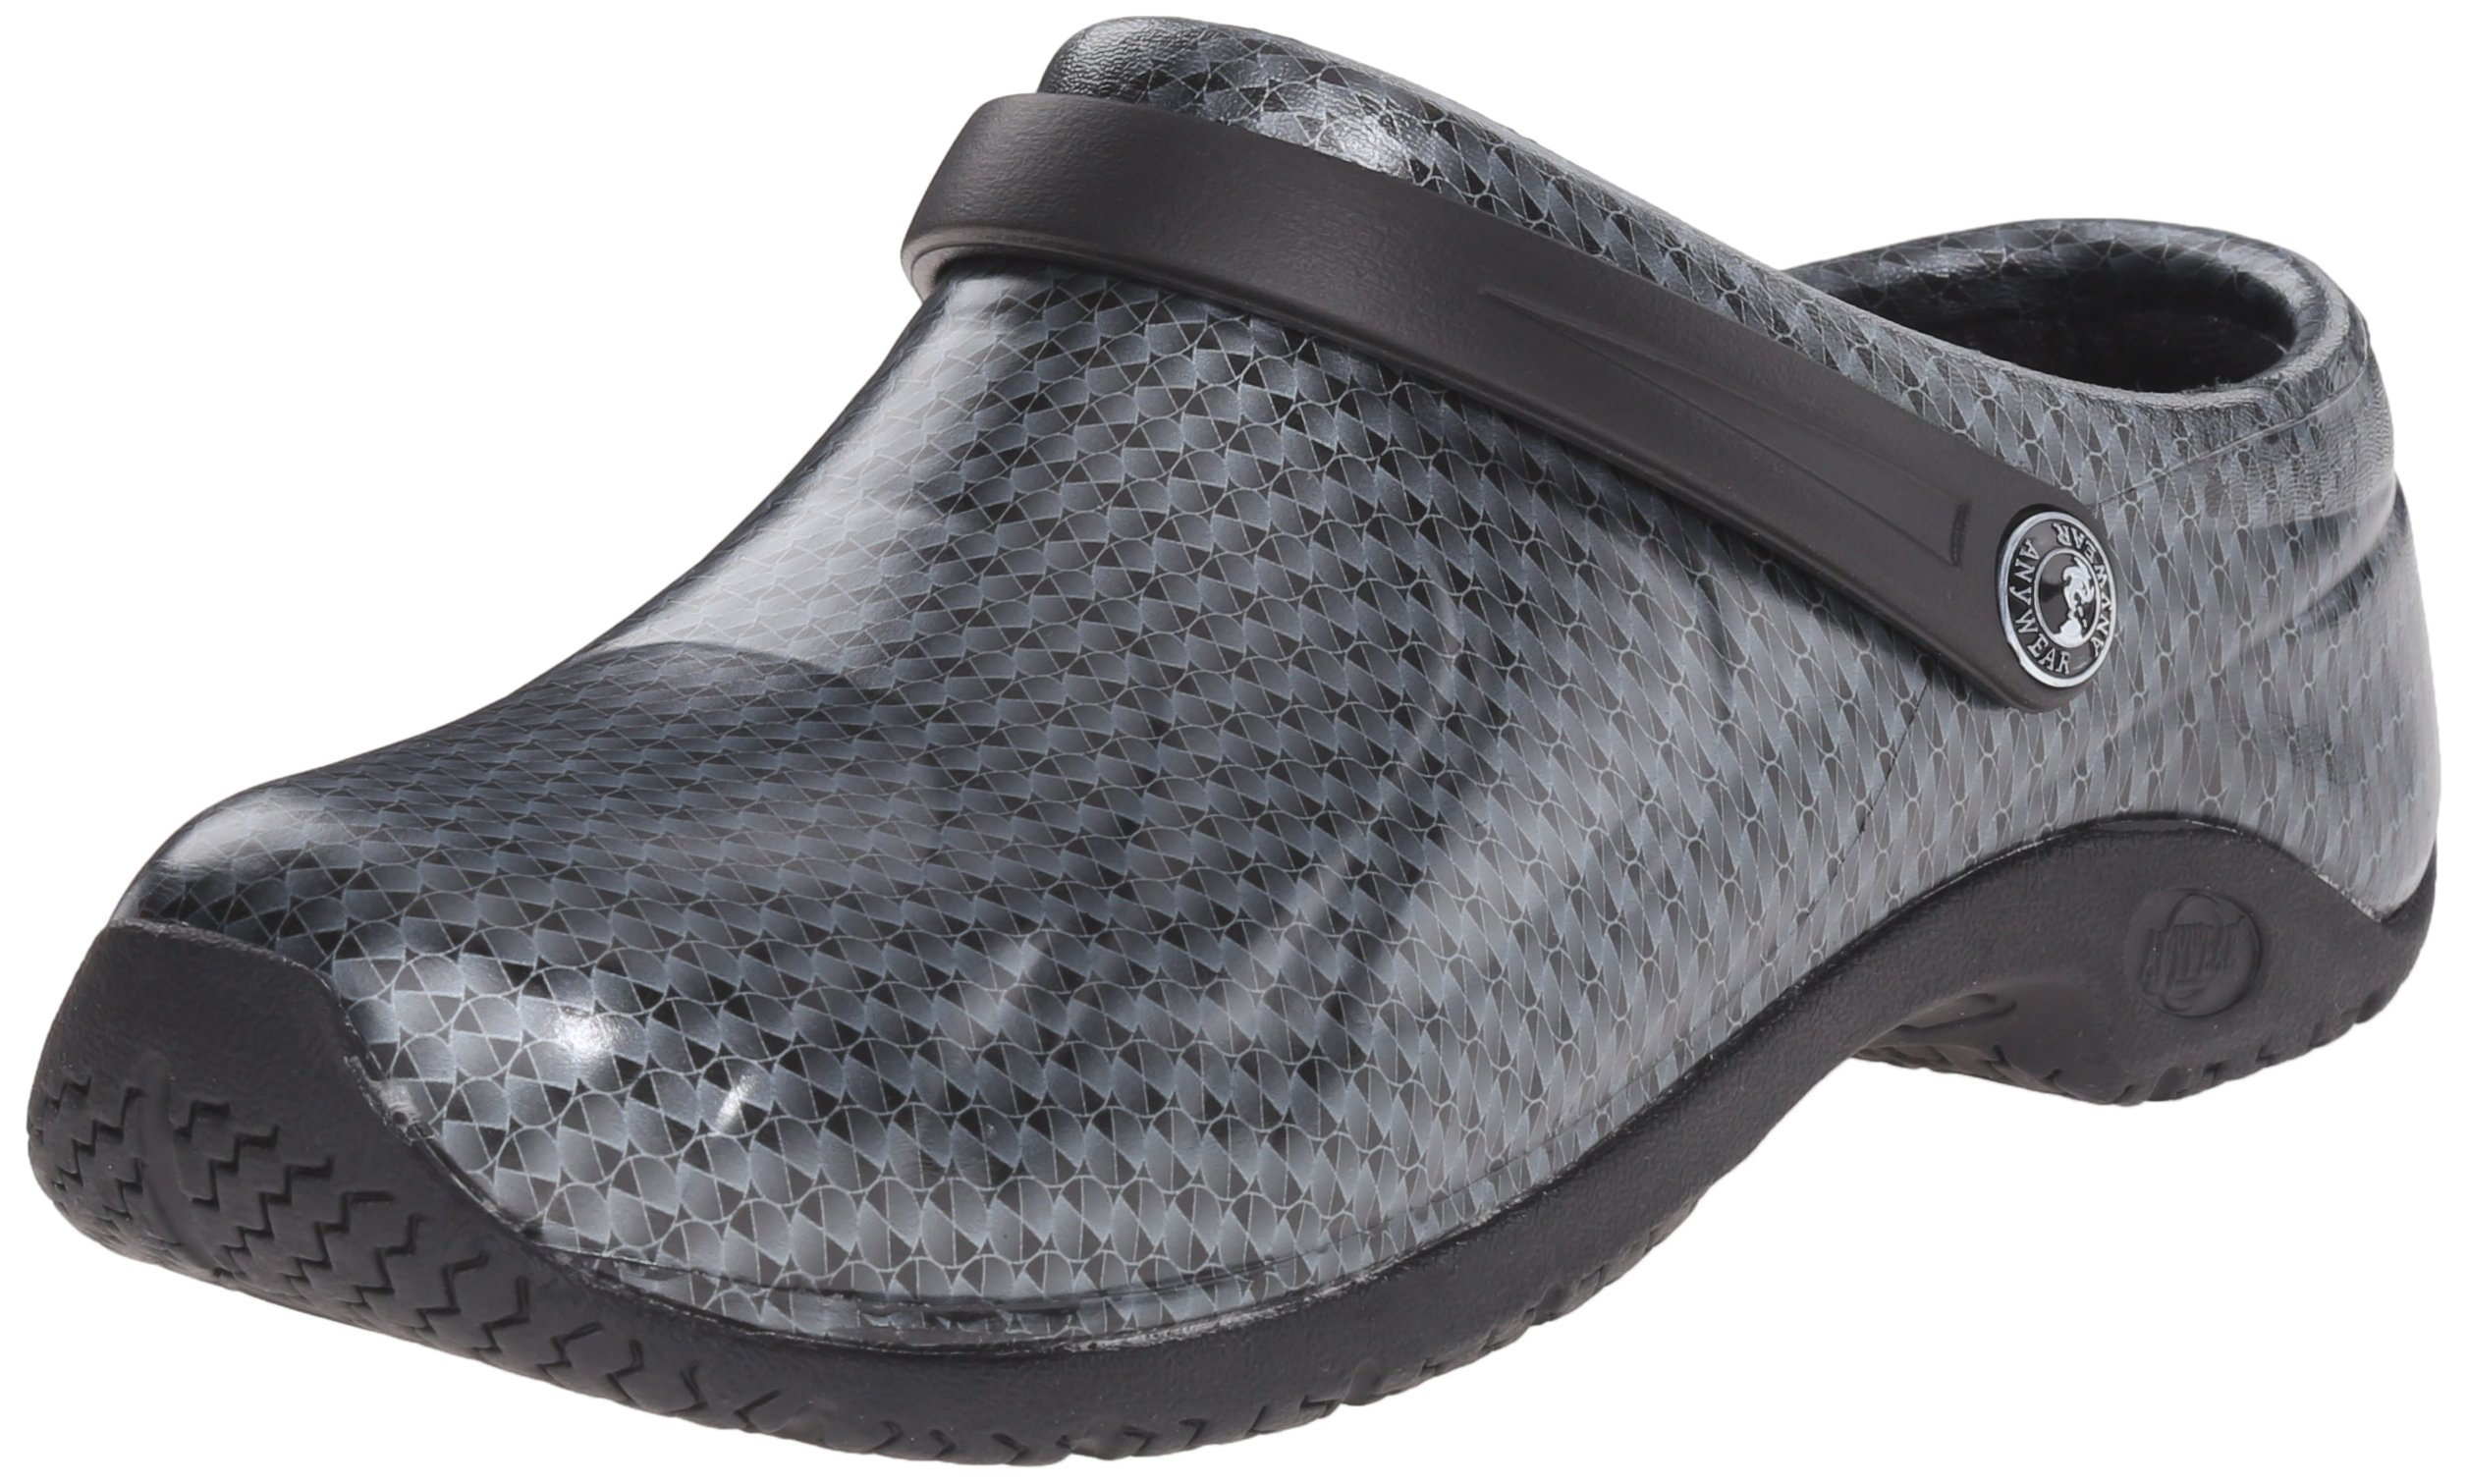 Anywear Women's Zone Work Shoe, Black Silver Pattern, 8 M US